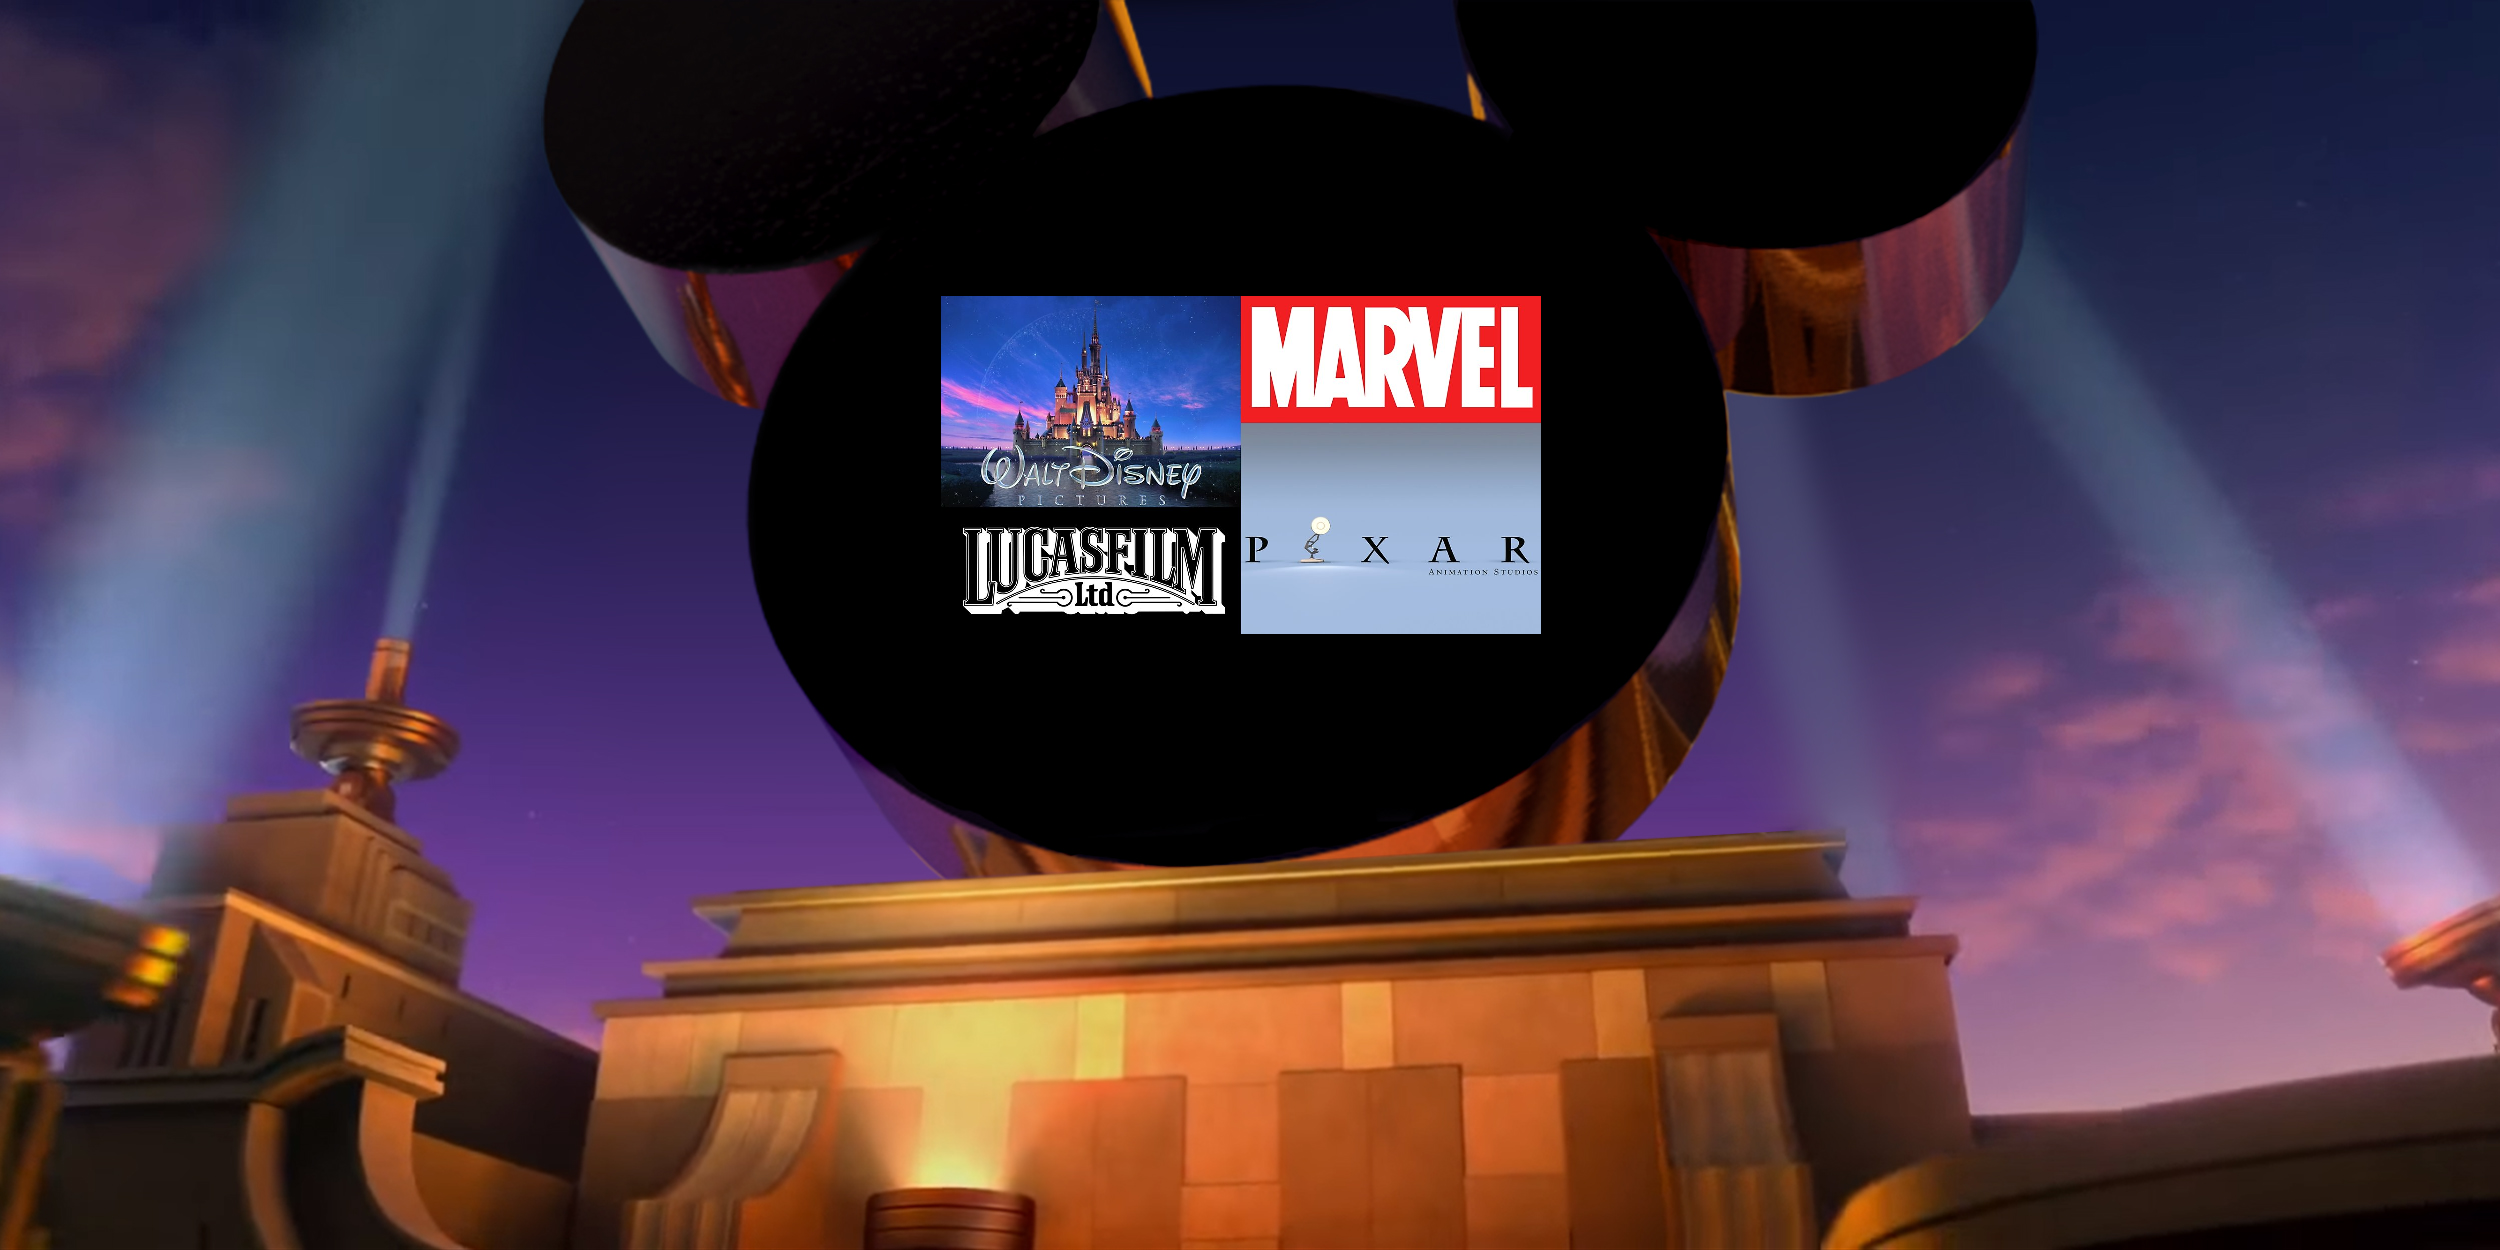 Buy Home Plans Disney Outbids Comcast For Control Of Fox What You Need